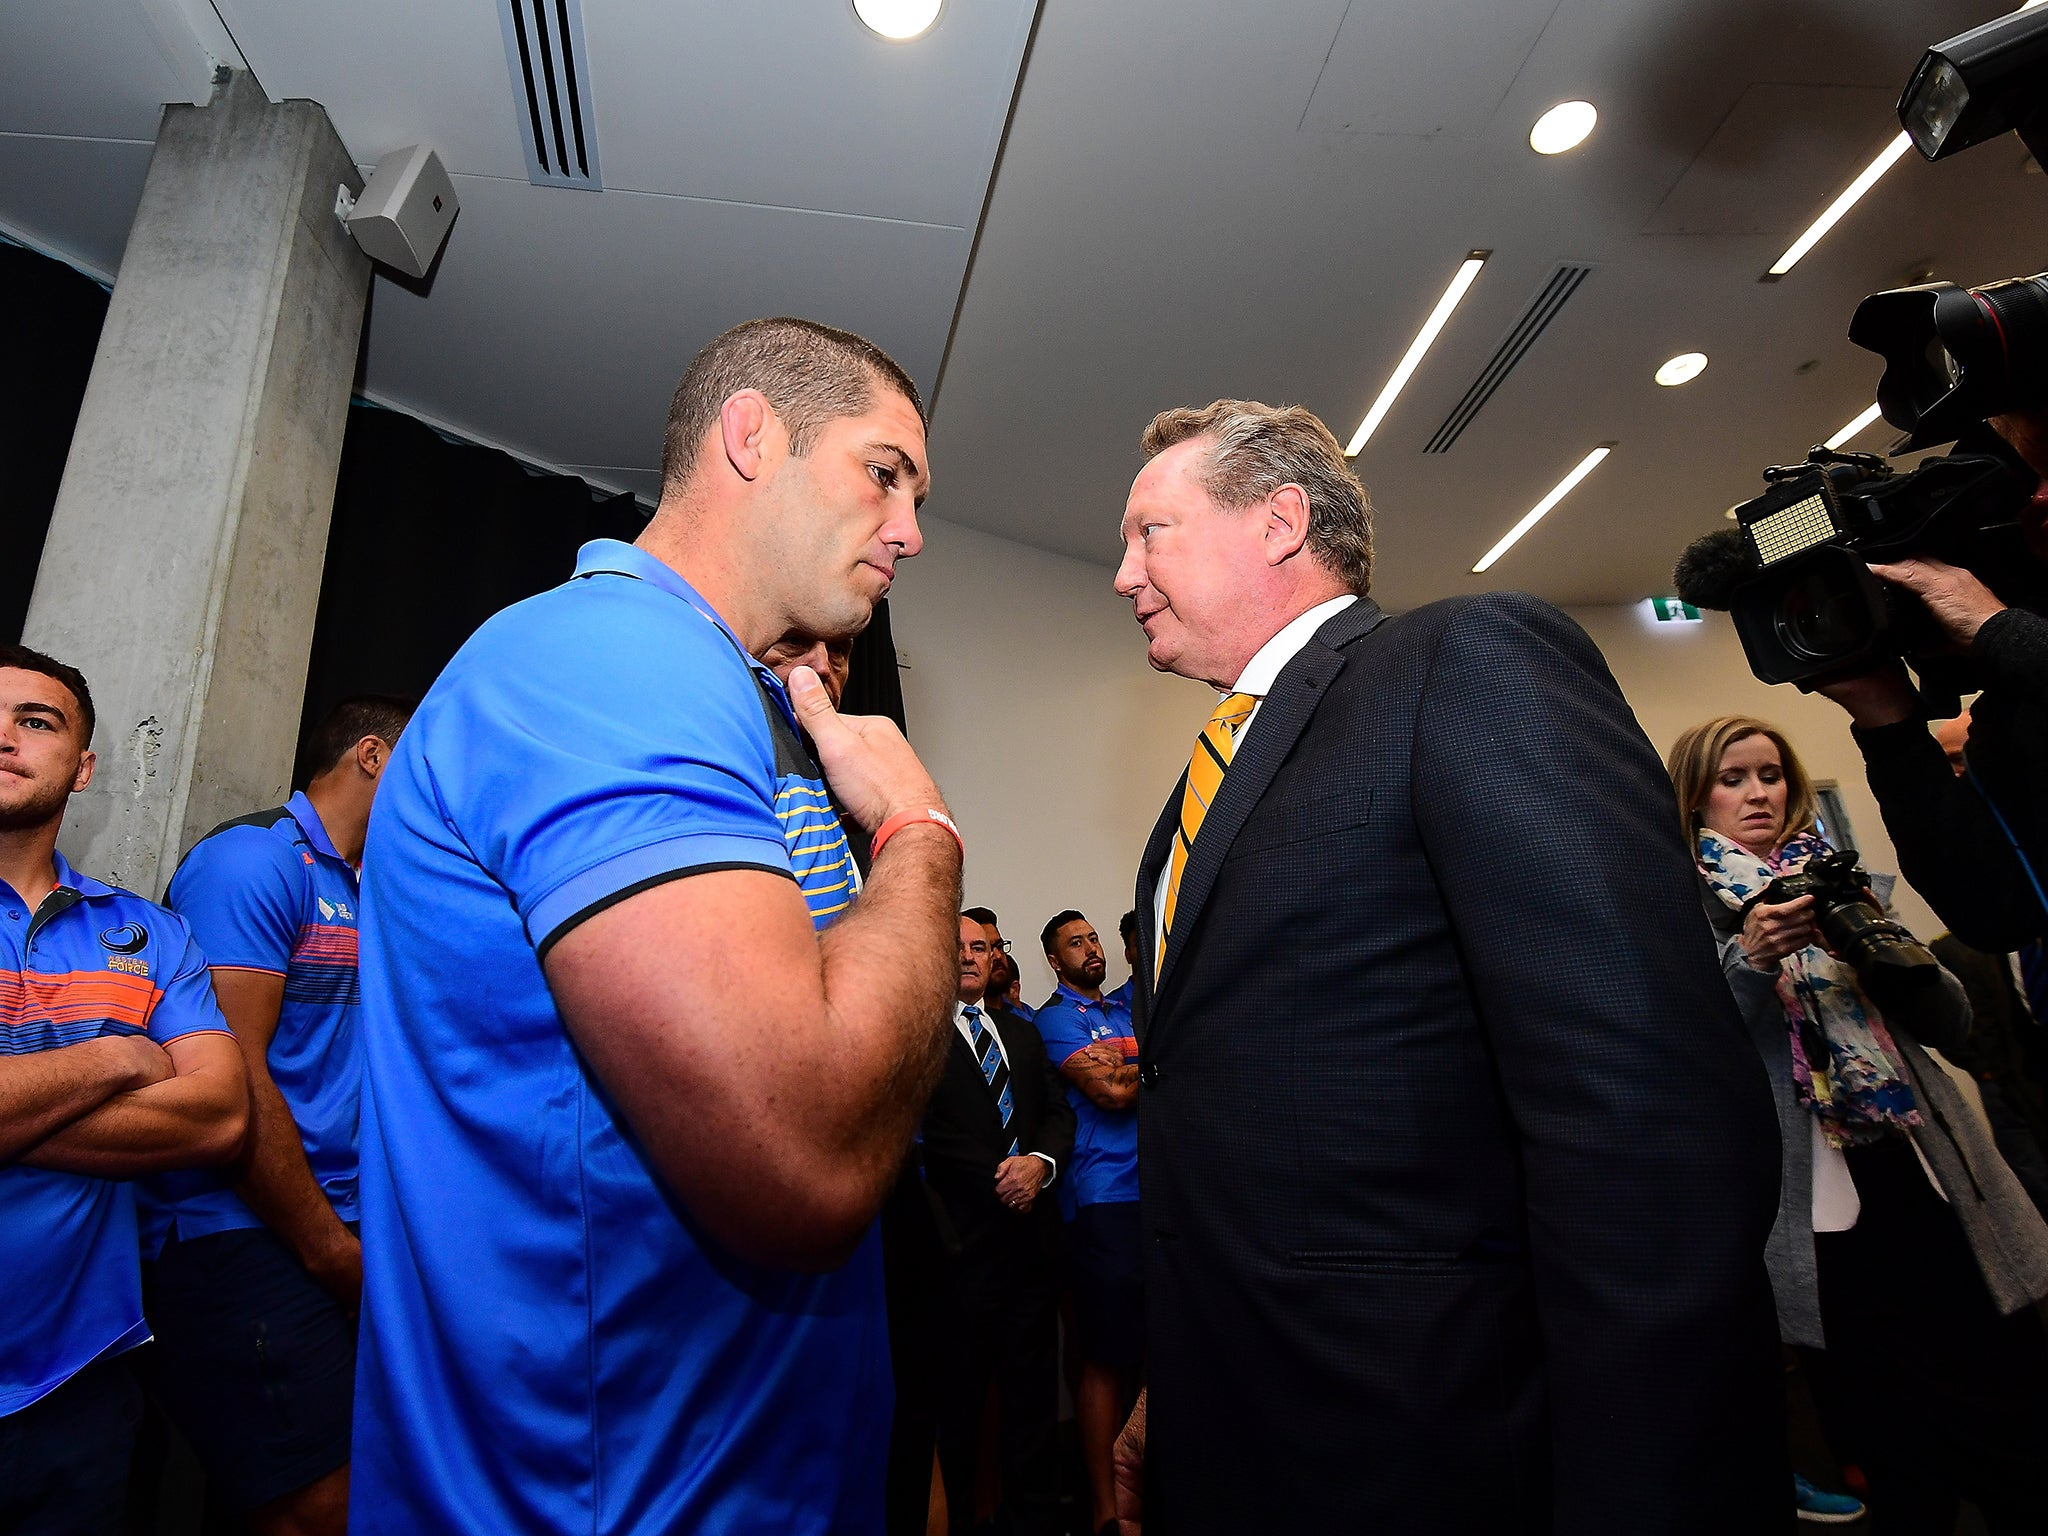 Western Force lose appeal against ARU as billionaire miner Andrew